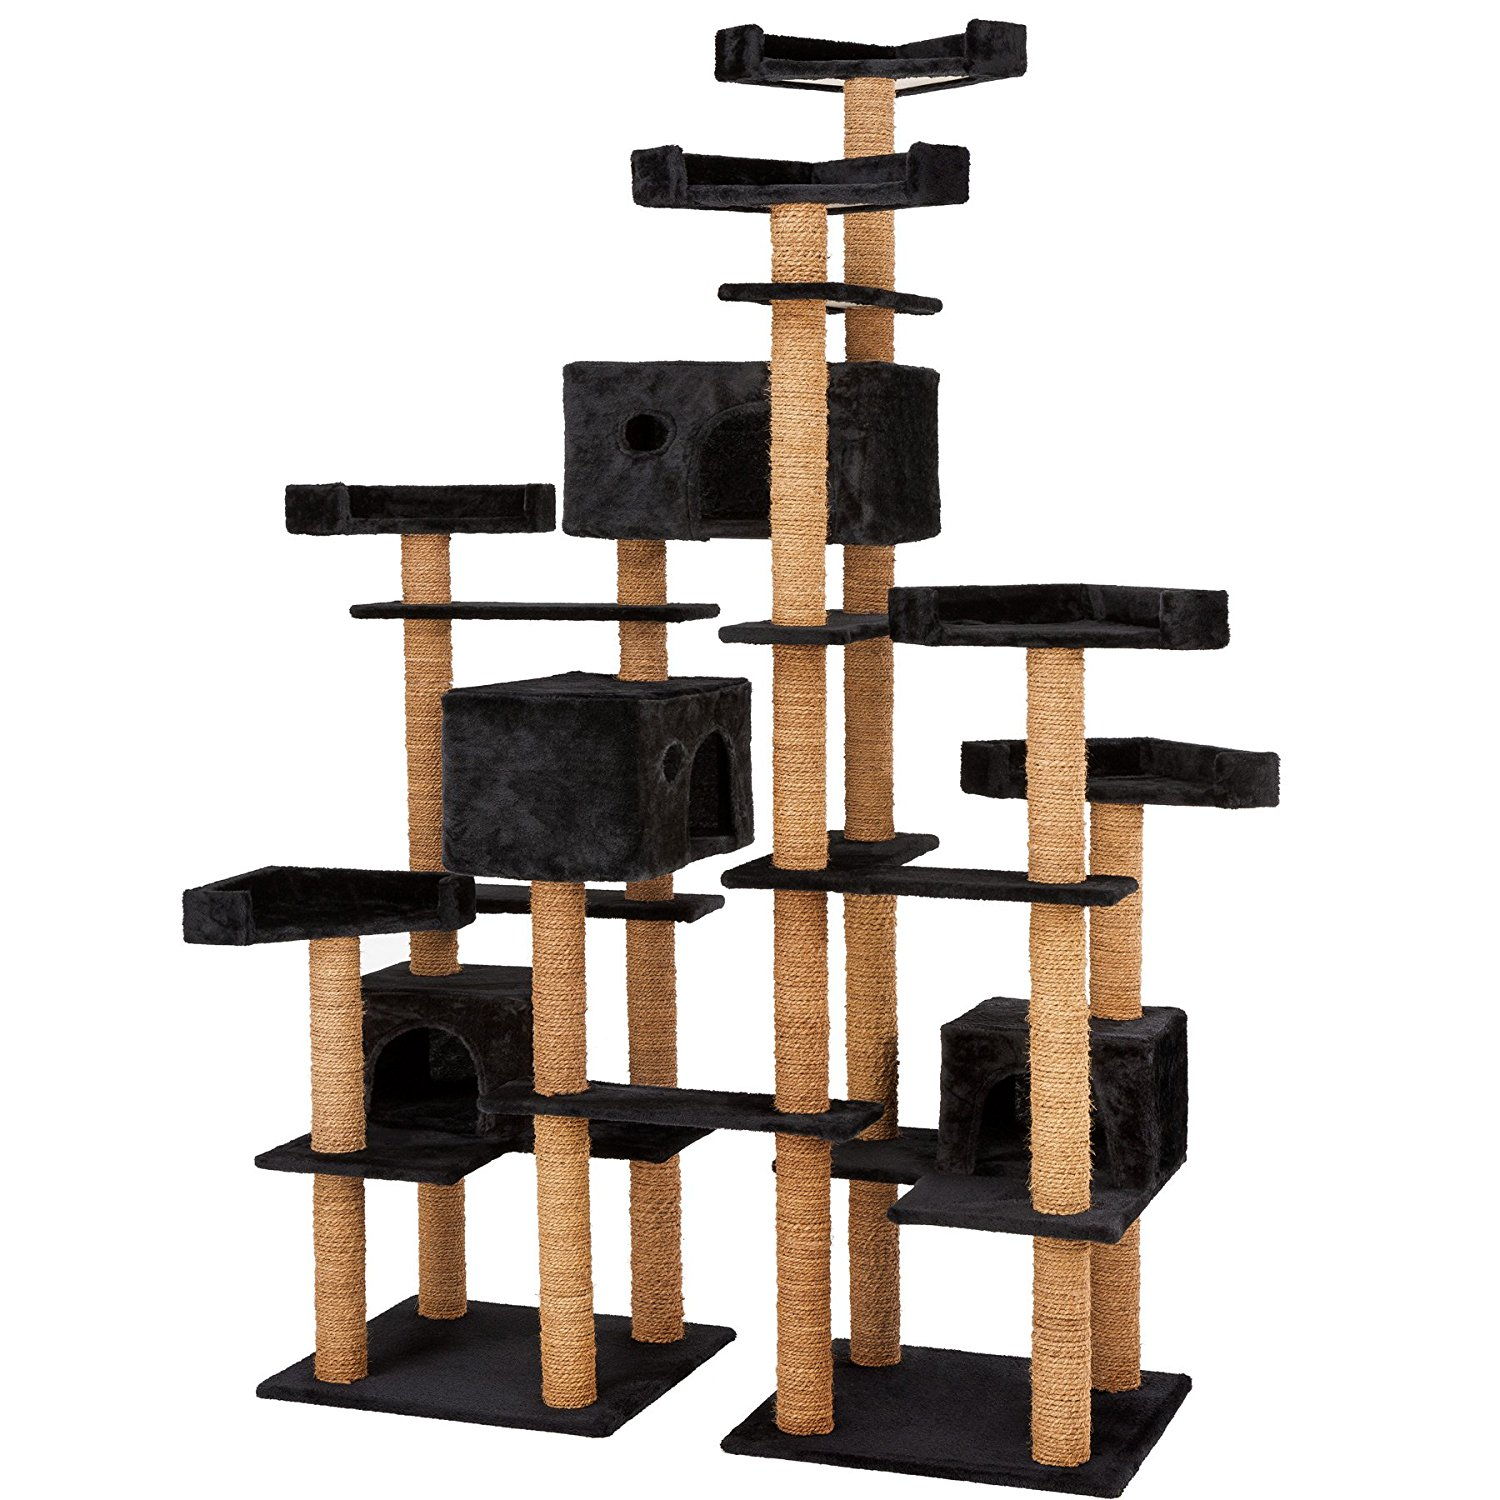 arbre chat g ant s lection de grands arbres xxl pour chat. Black Bedroom Furniture Sets. Home Design Ideas